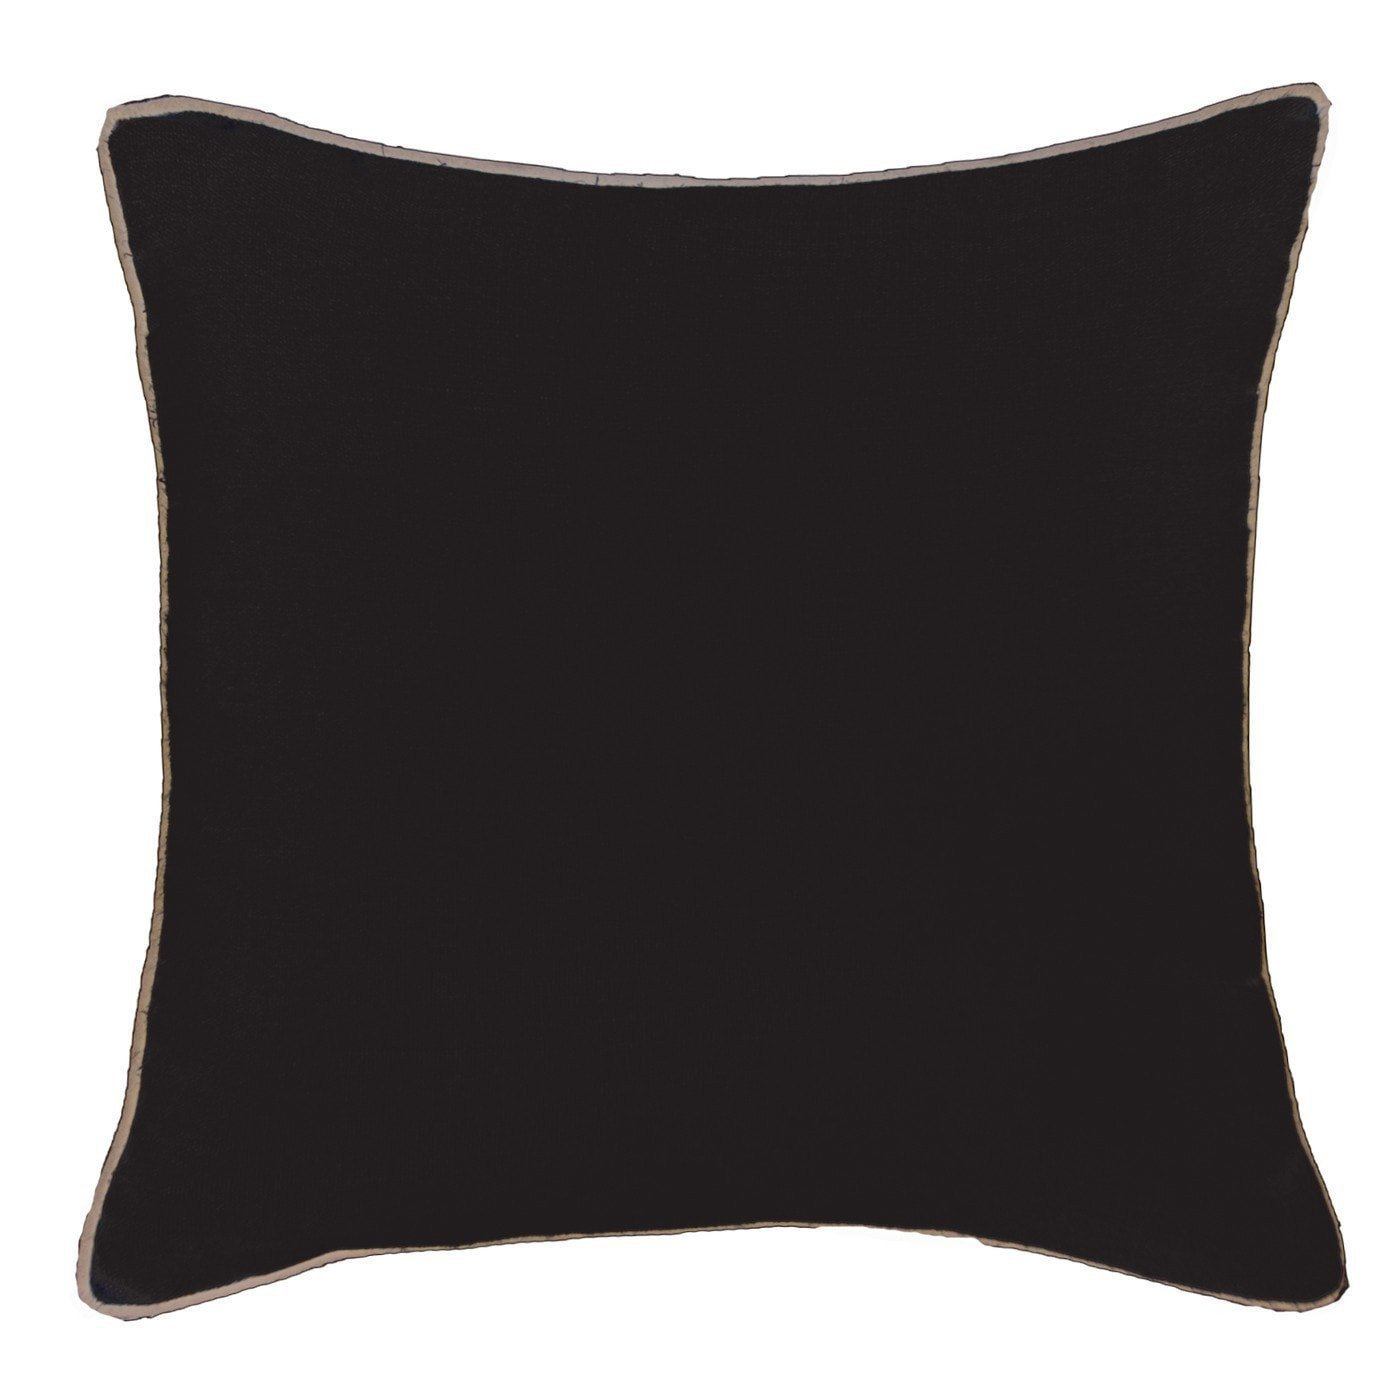 Bandhini Homewear Design Lounge Cushion Black / 22 x 22 Piped Linen Black Lounge Cushion 55 x 55 cm